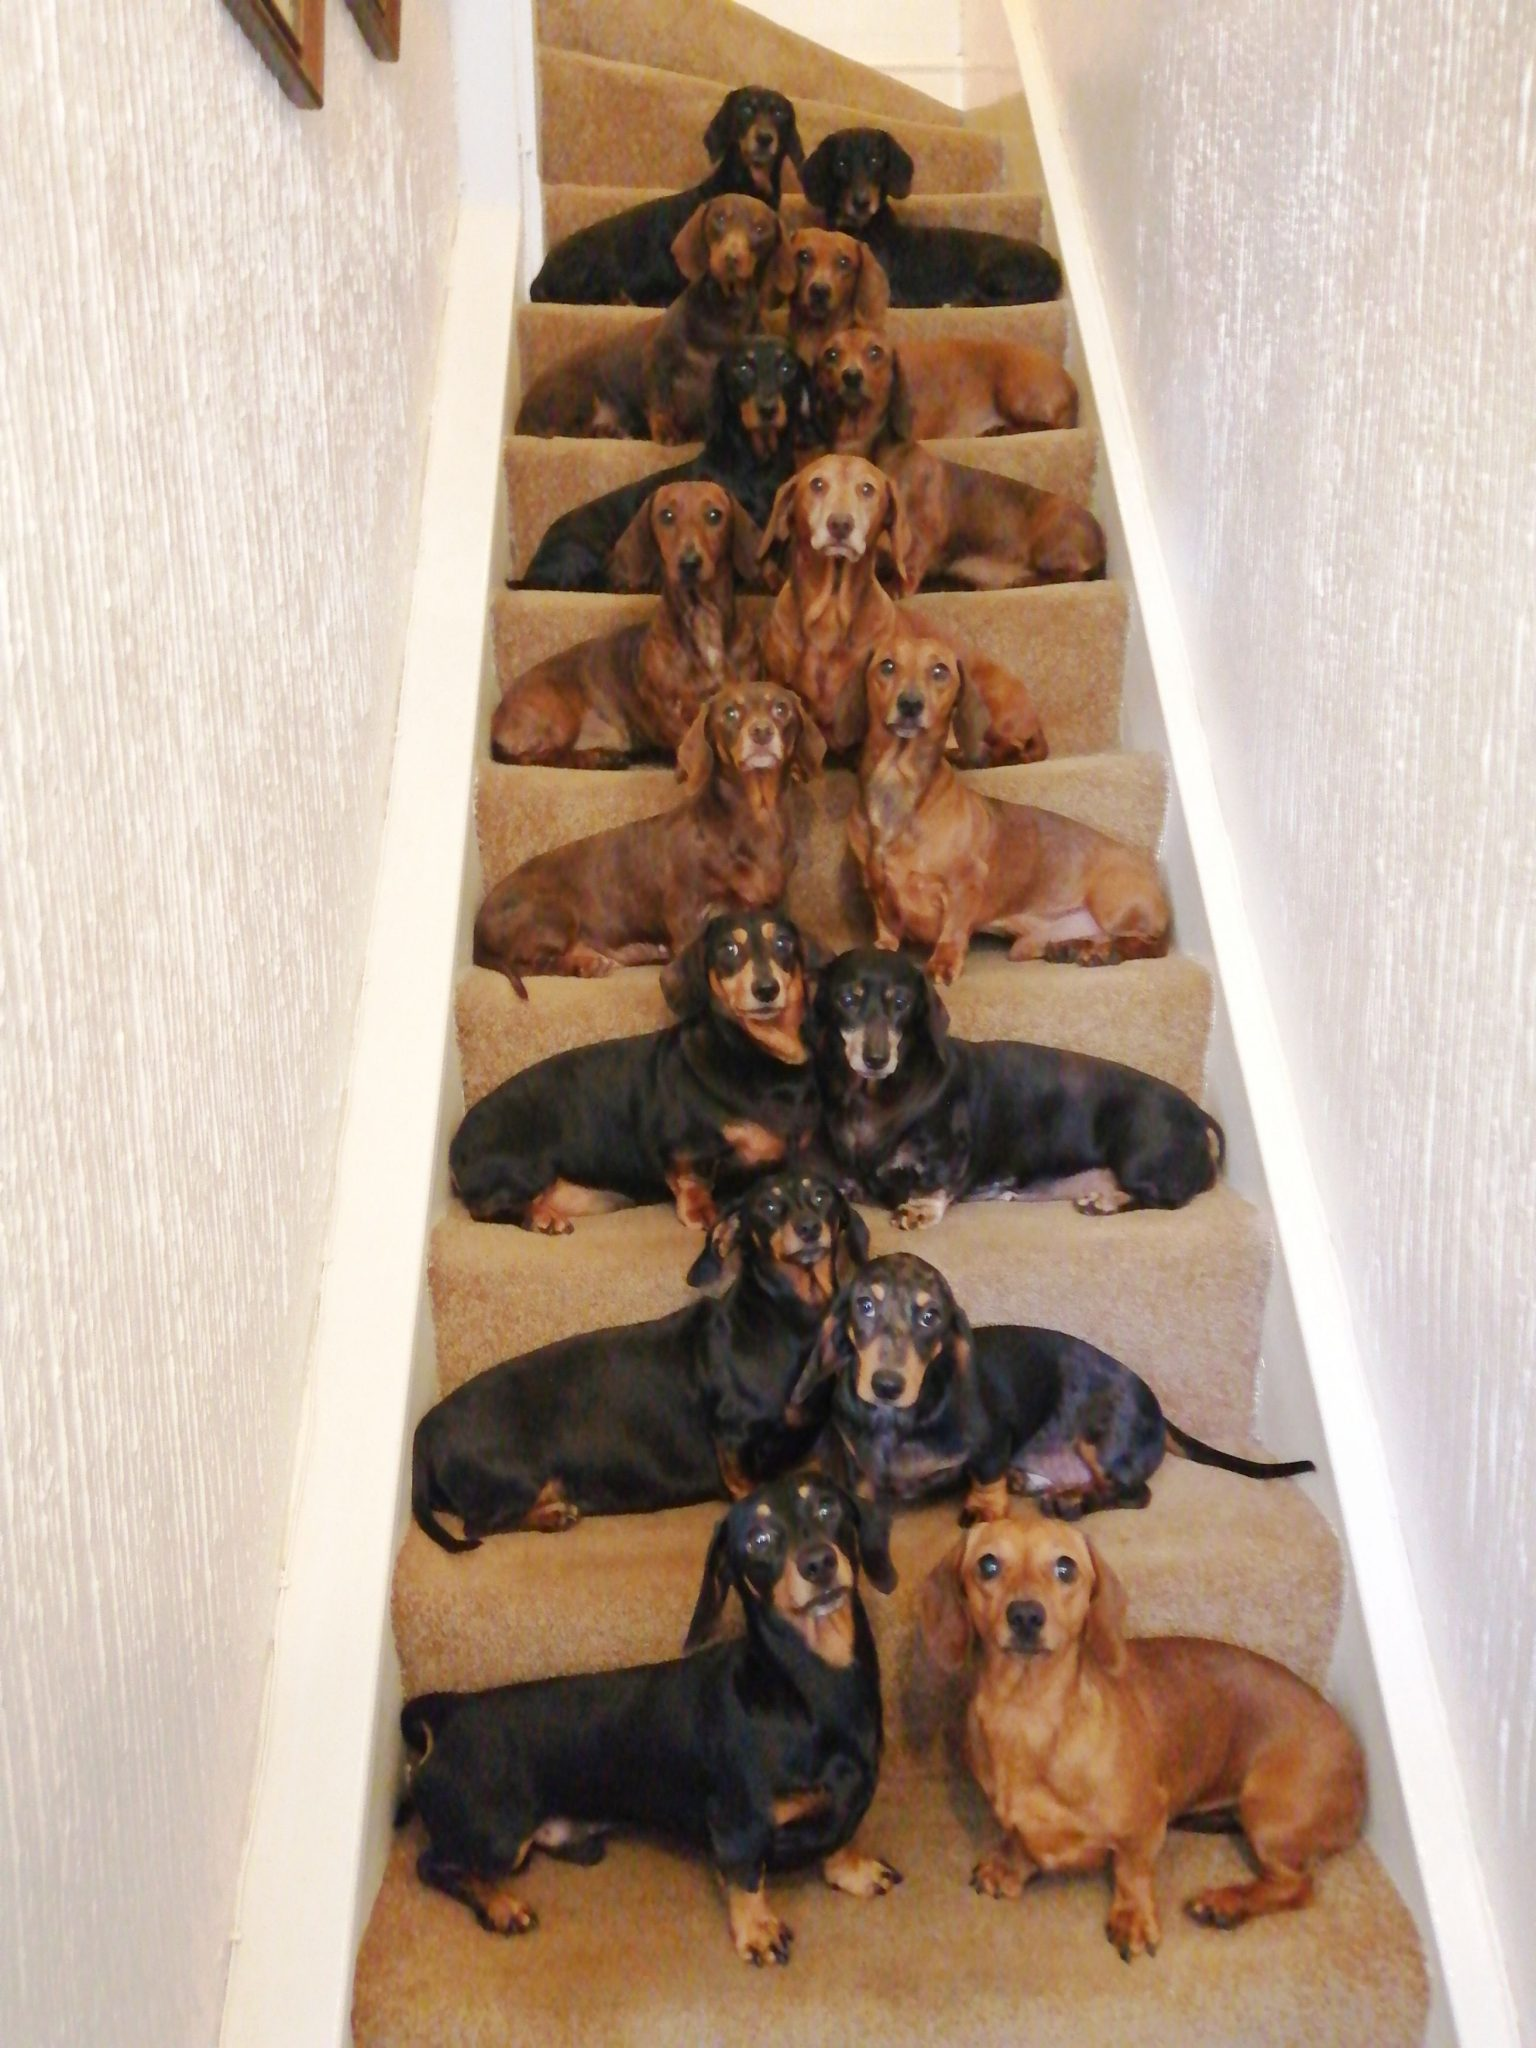 Dog Owner Gets His 17 Dachshunds To Pose For Festive Holiday Photo